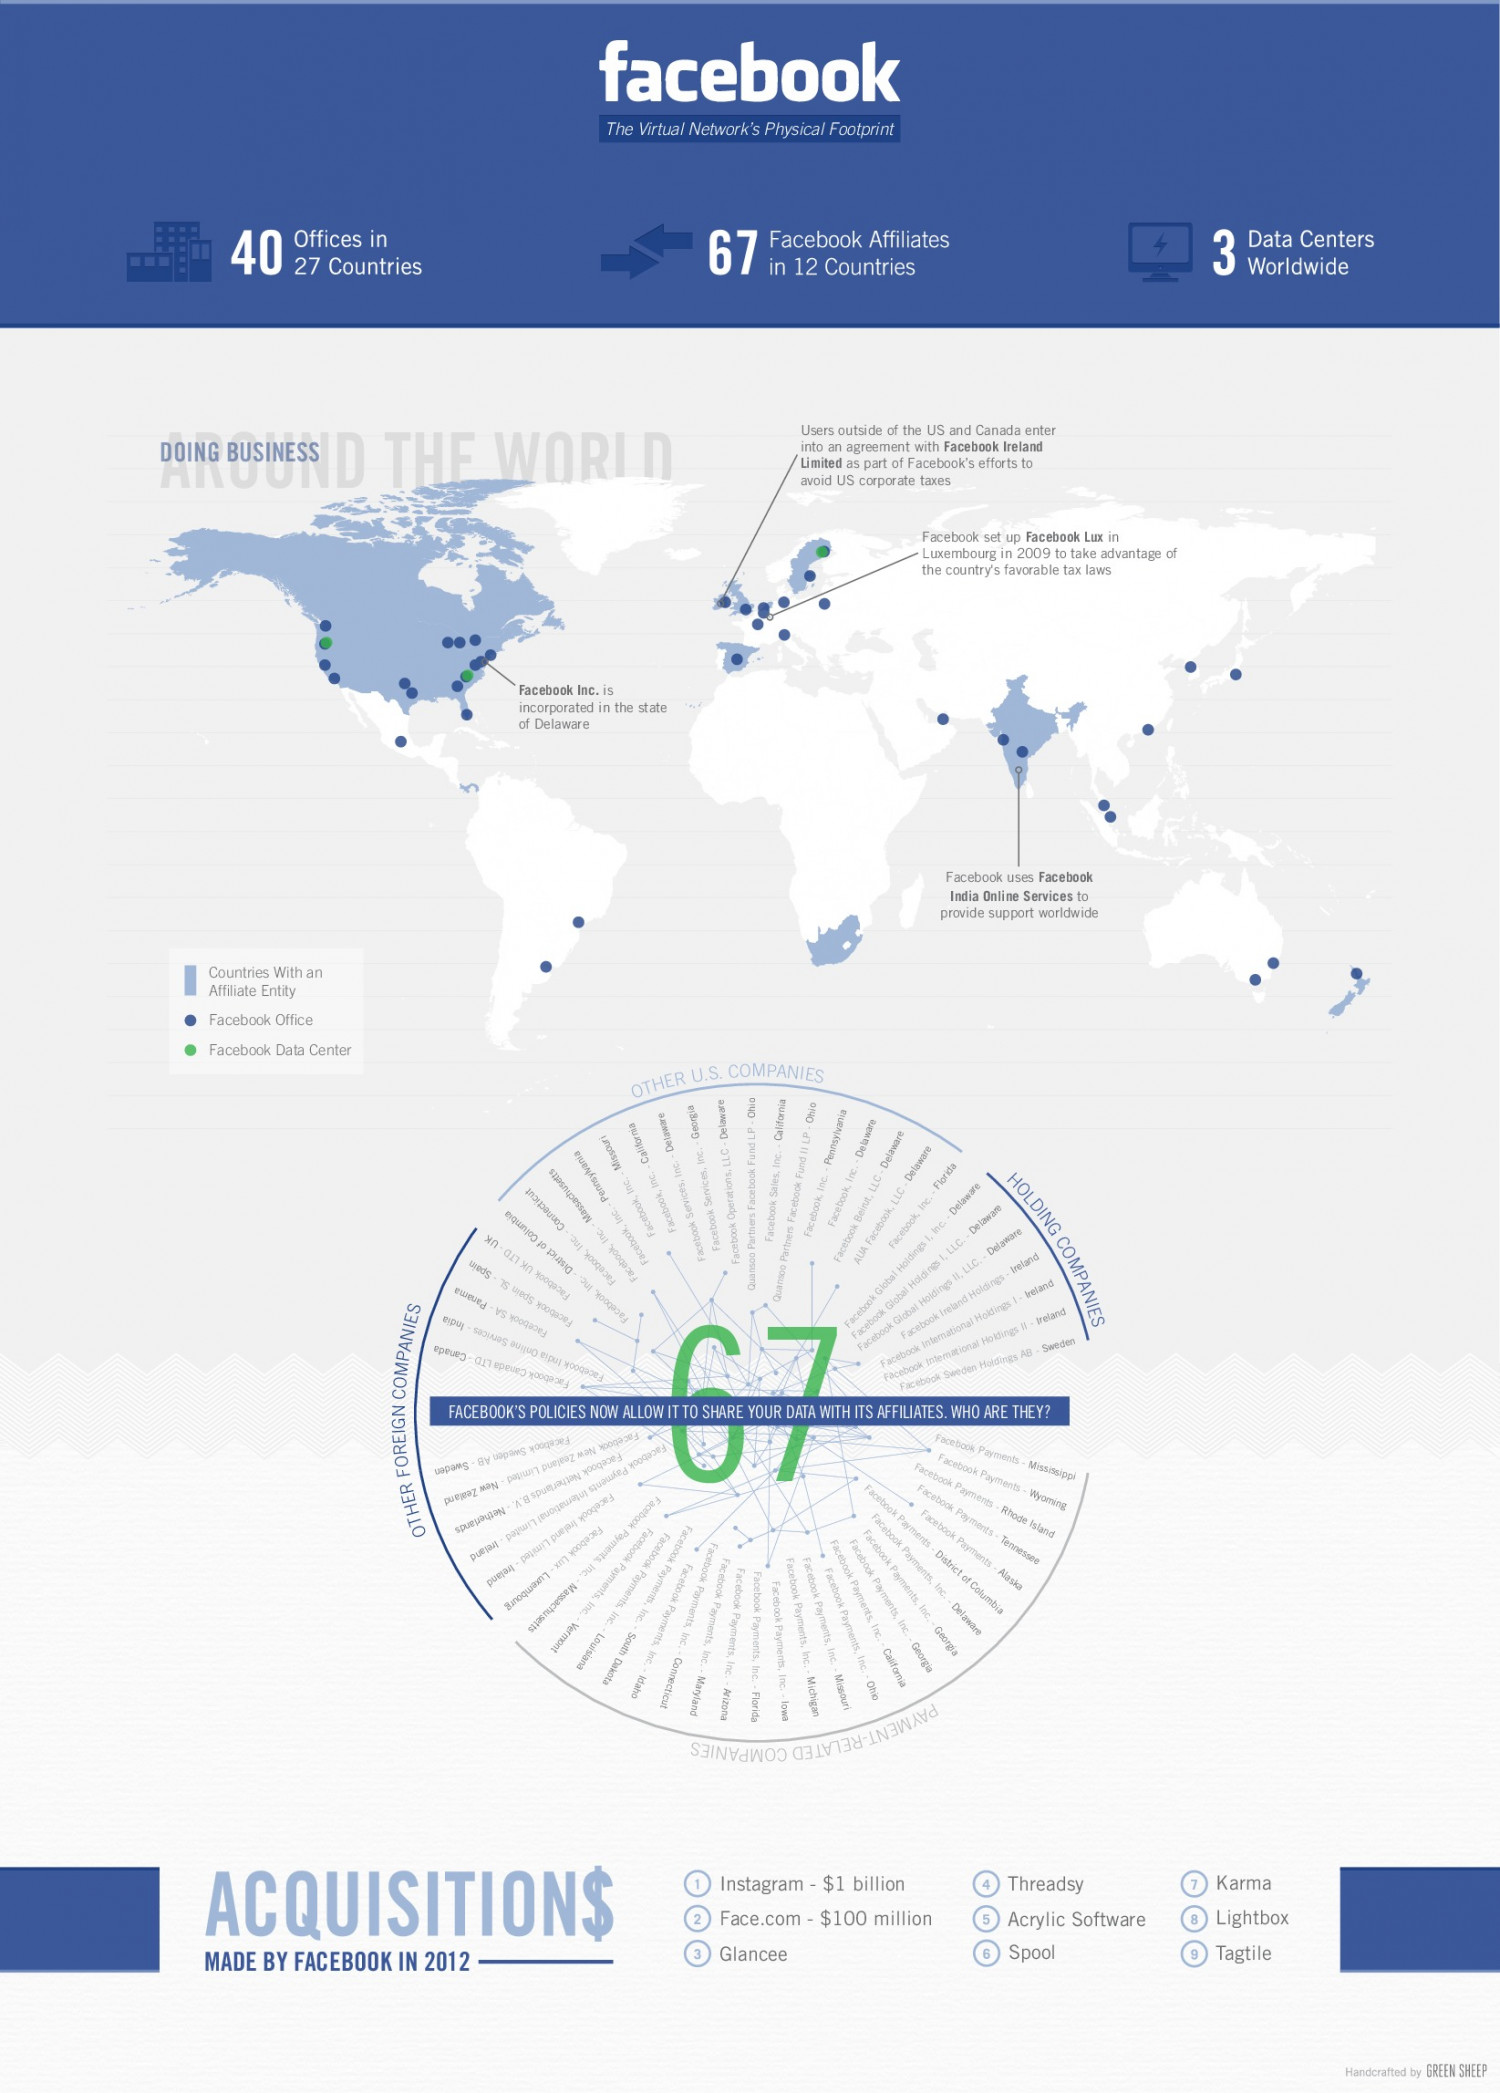 Facebook: The Network's Physical Footprint Infographic